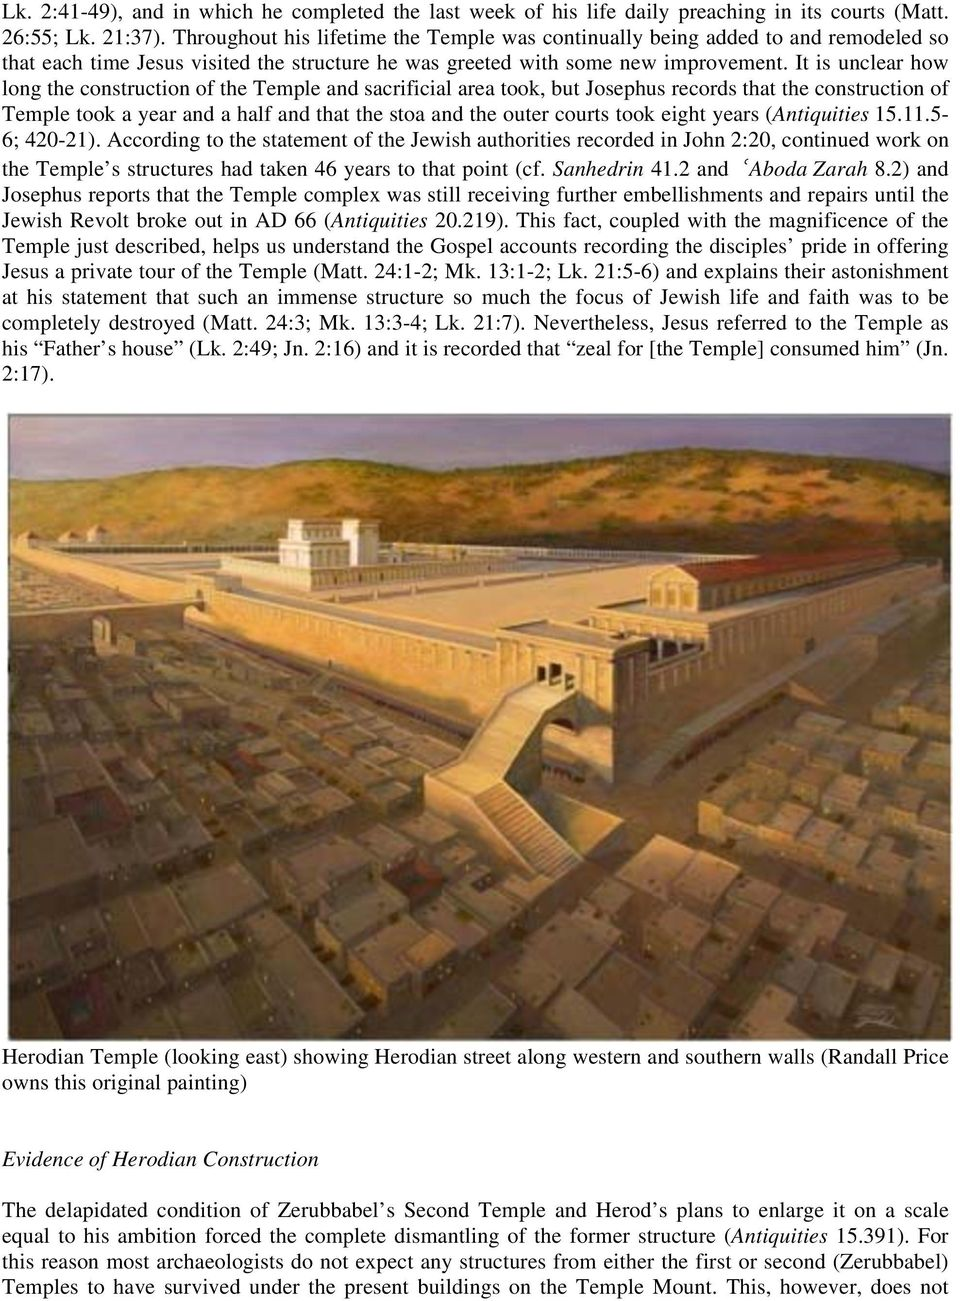 It is unclear how long the construction of the Temple and sacrificial area took, but Josephus records that the construction of Temple took a year and a half and that the stoa and the outer courts